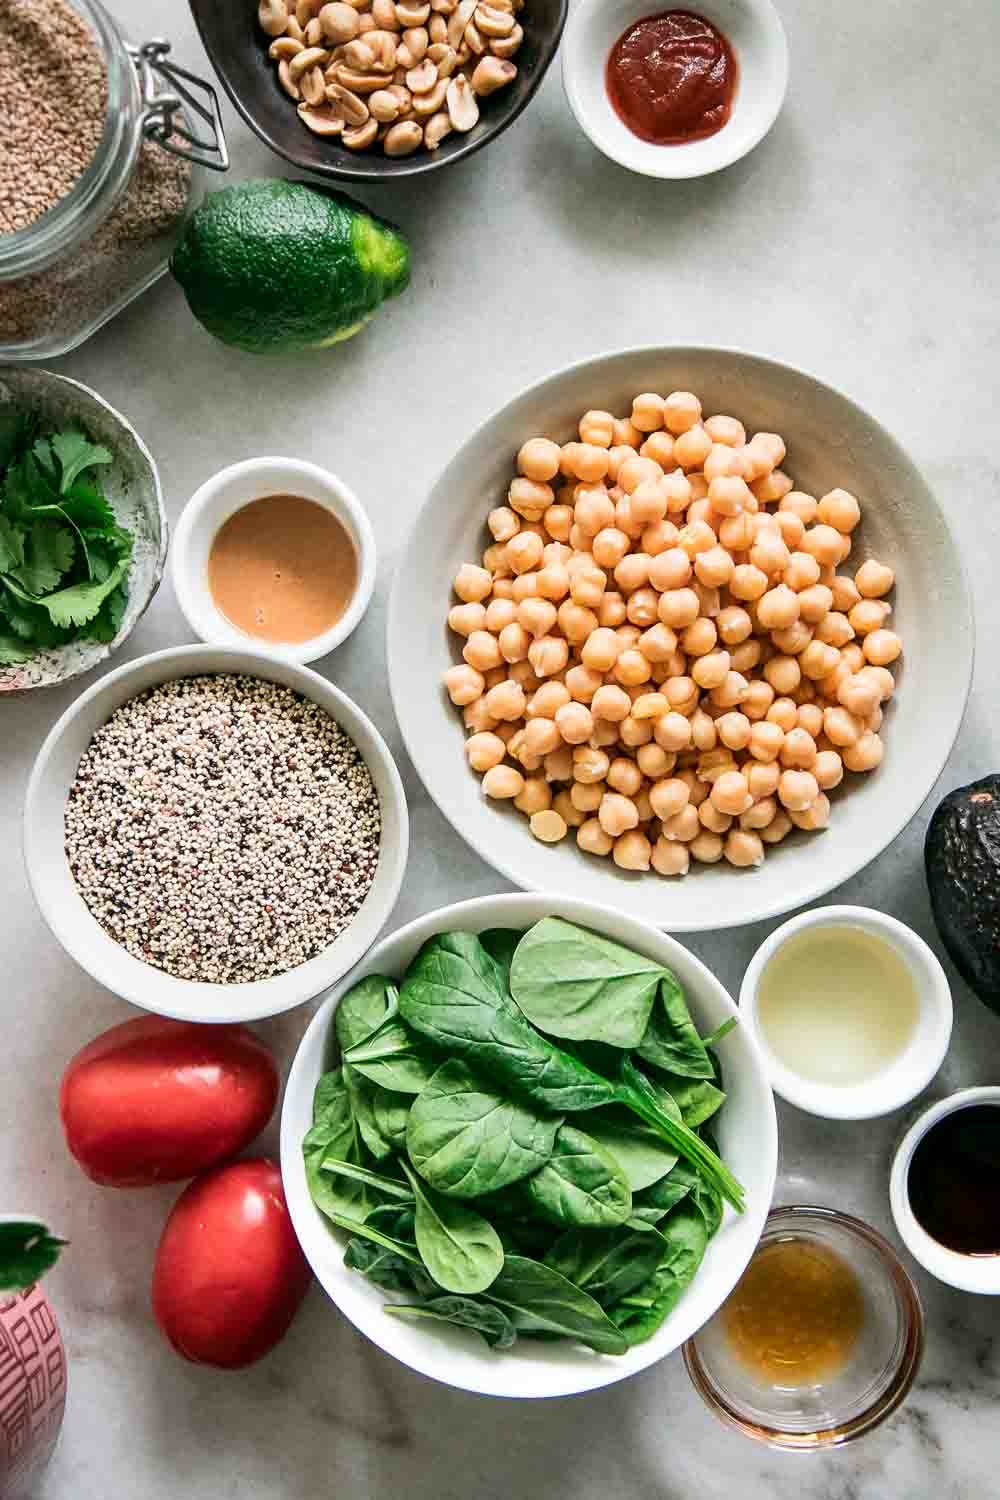 bowls of chickpeas, spinach, quinoa, sesame seeds, and tomatoes on a white table